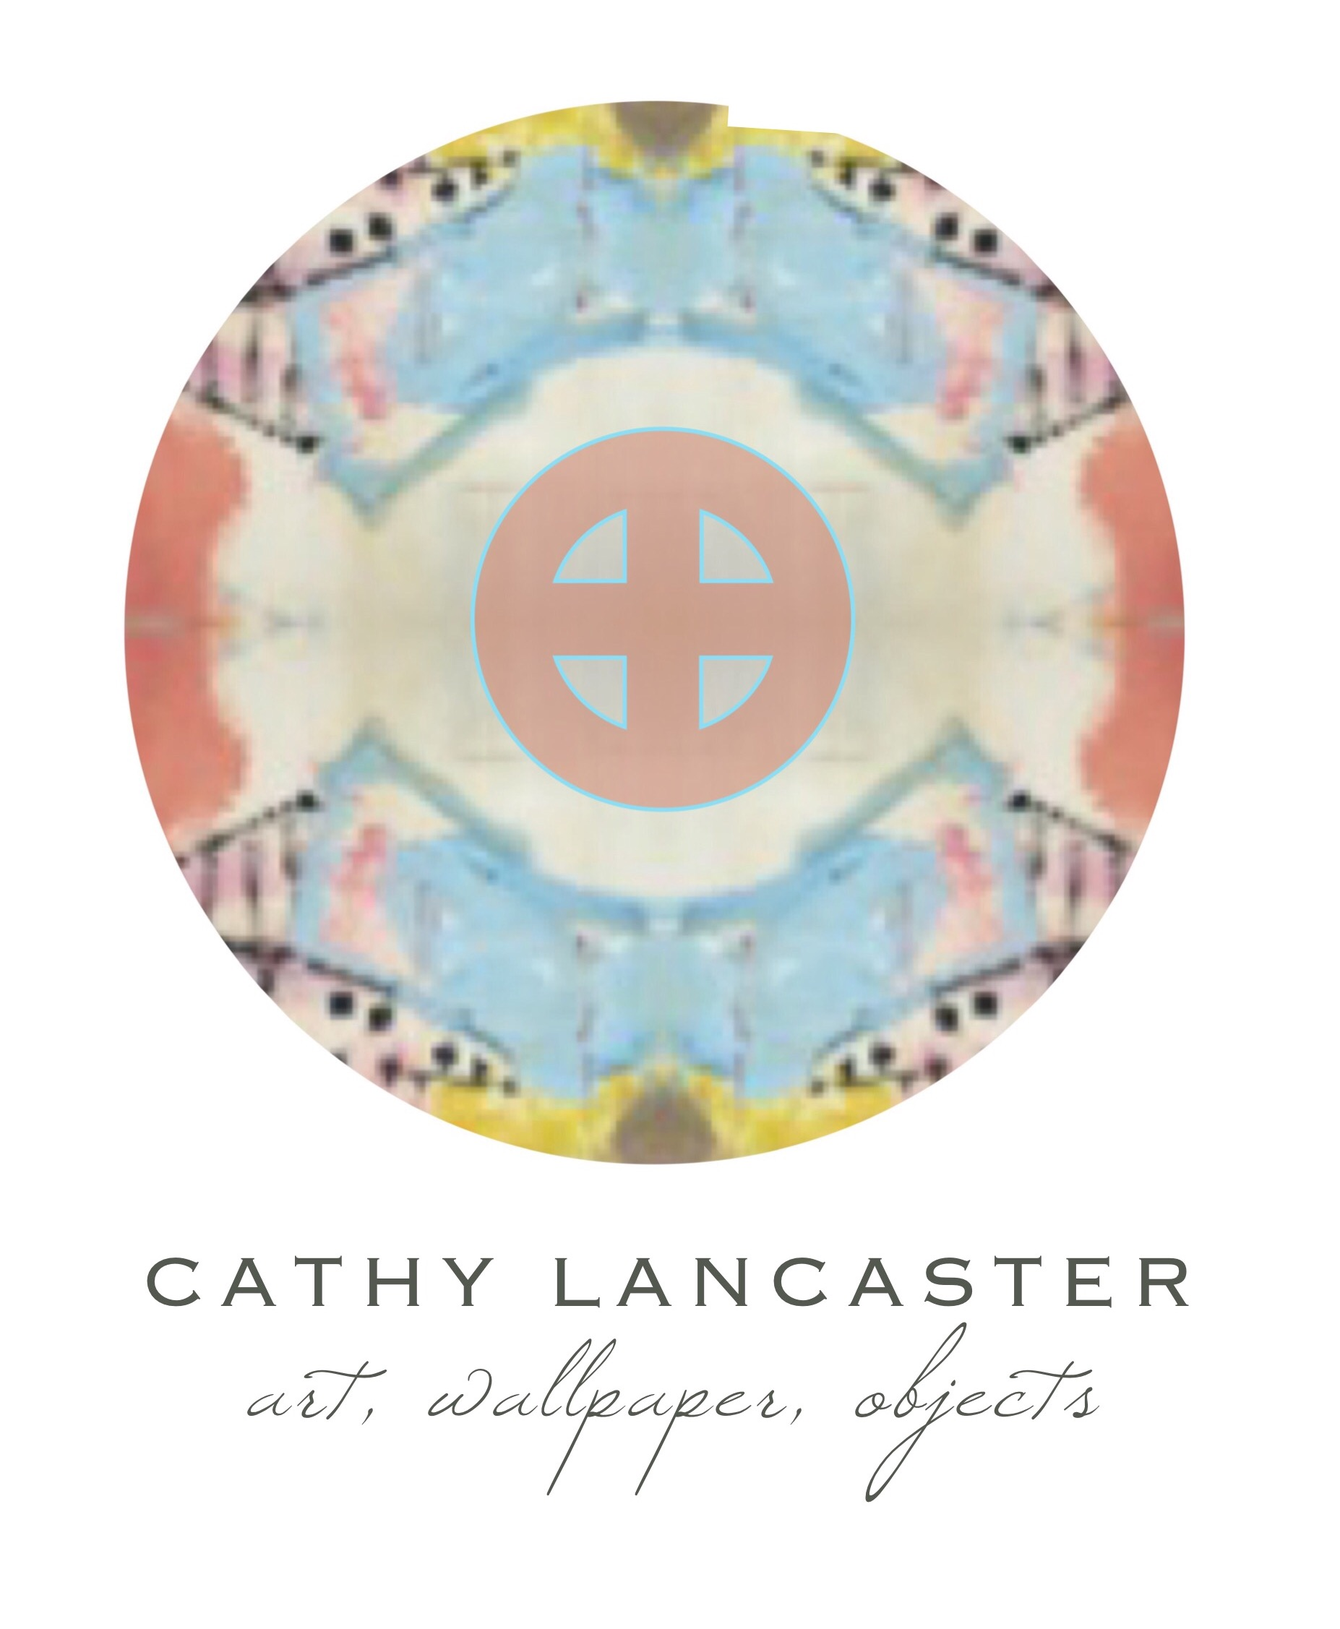 Cathy Lancaster